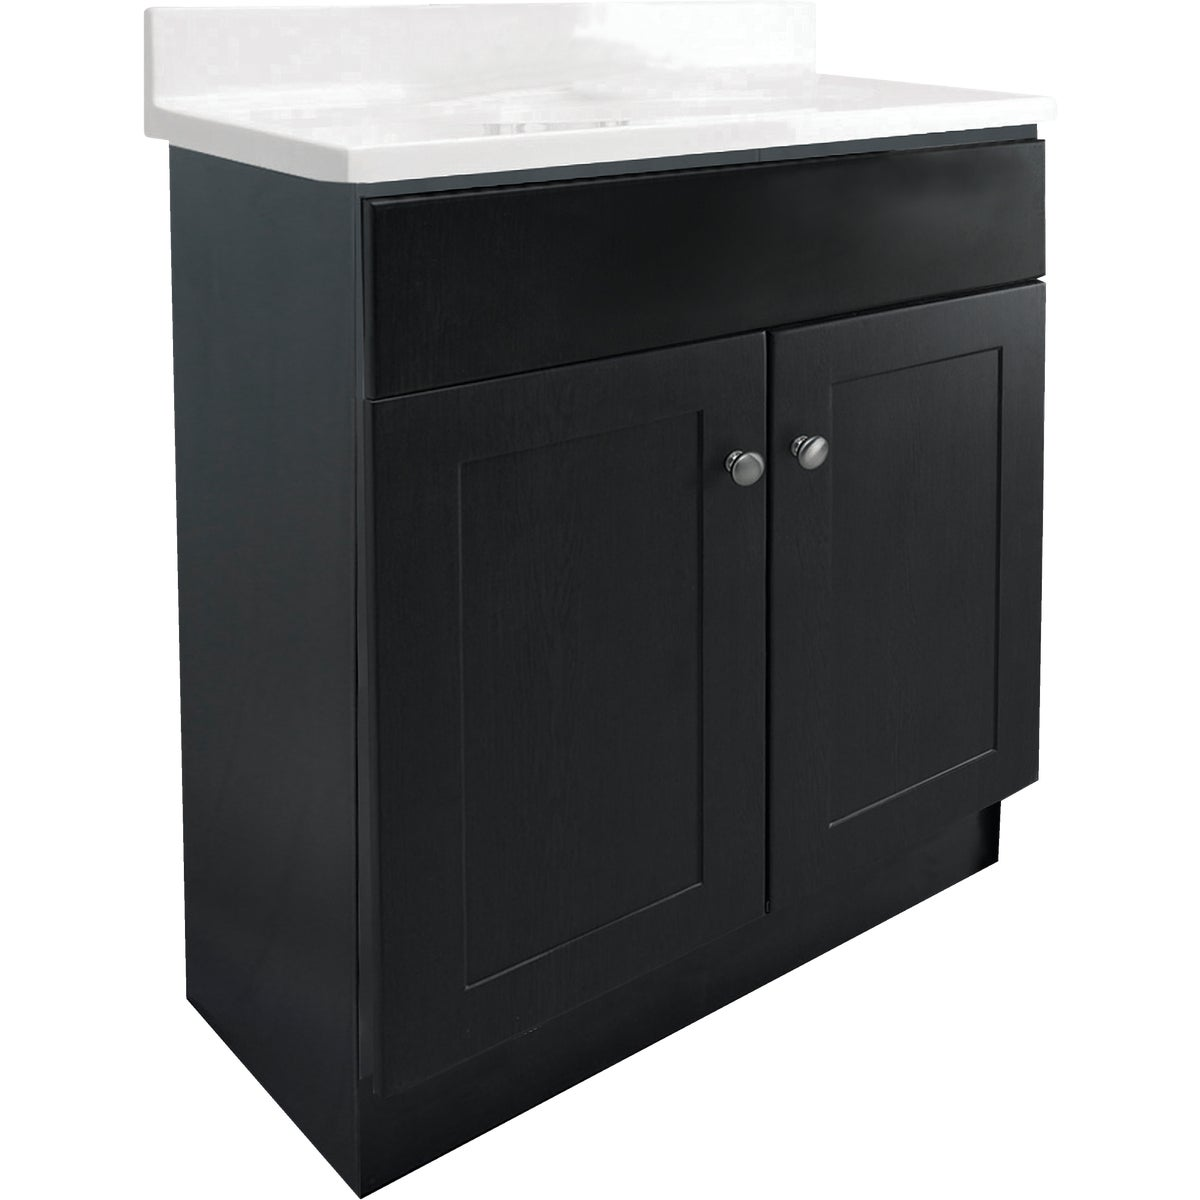 OAK COMBO VANITY - 541649 by Design House  Dhi